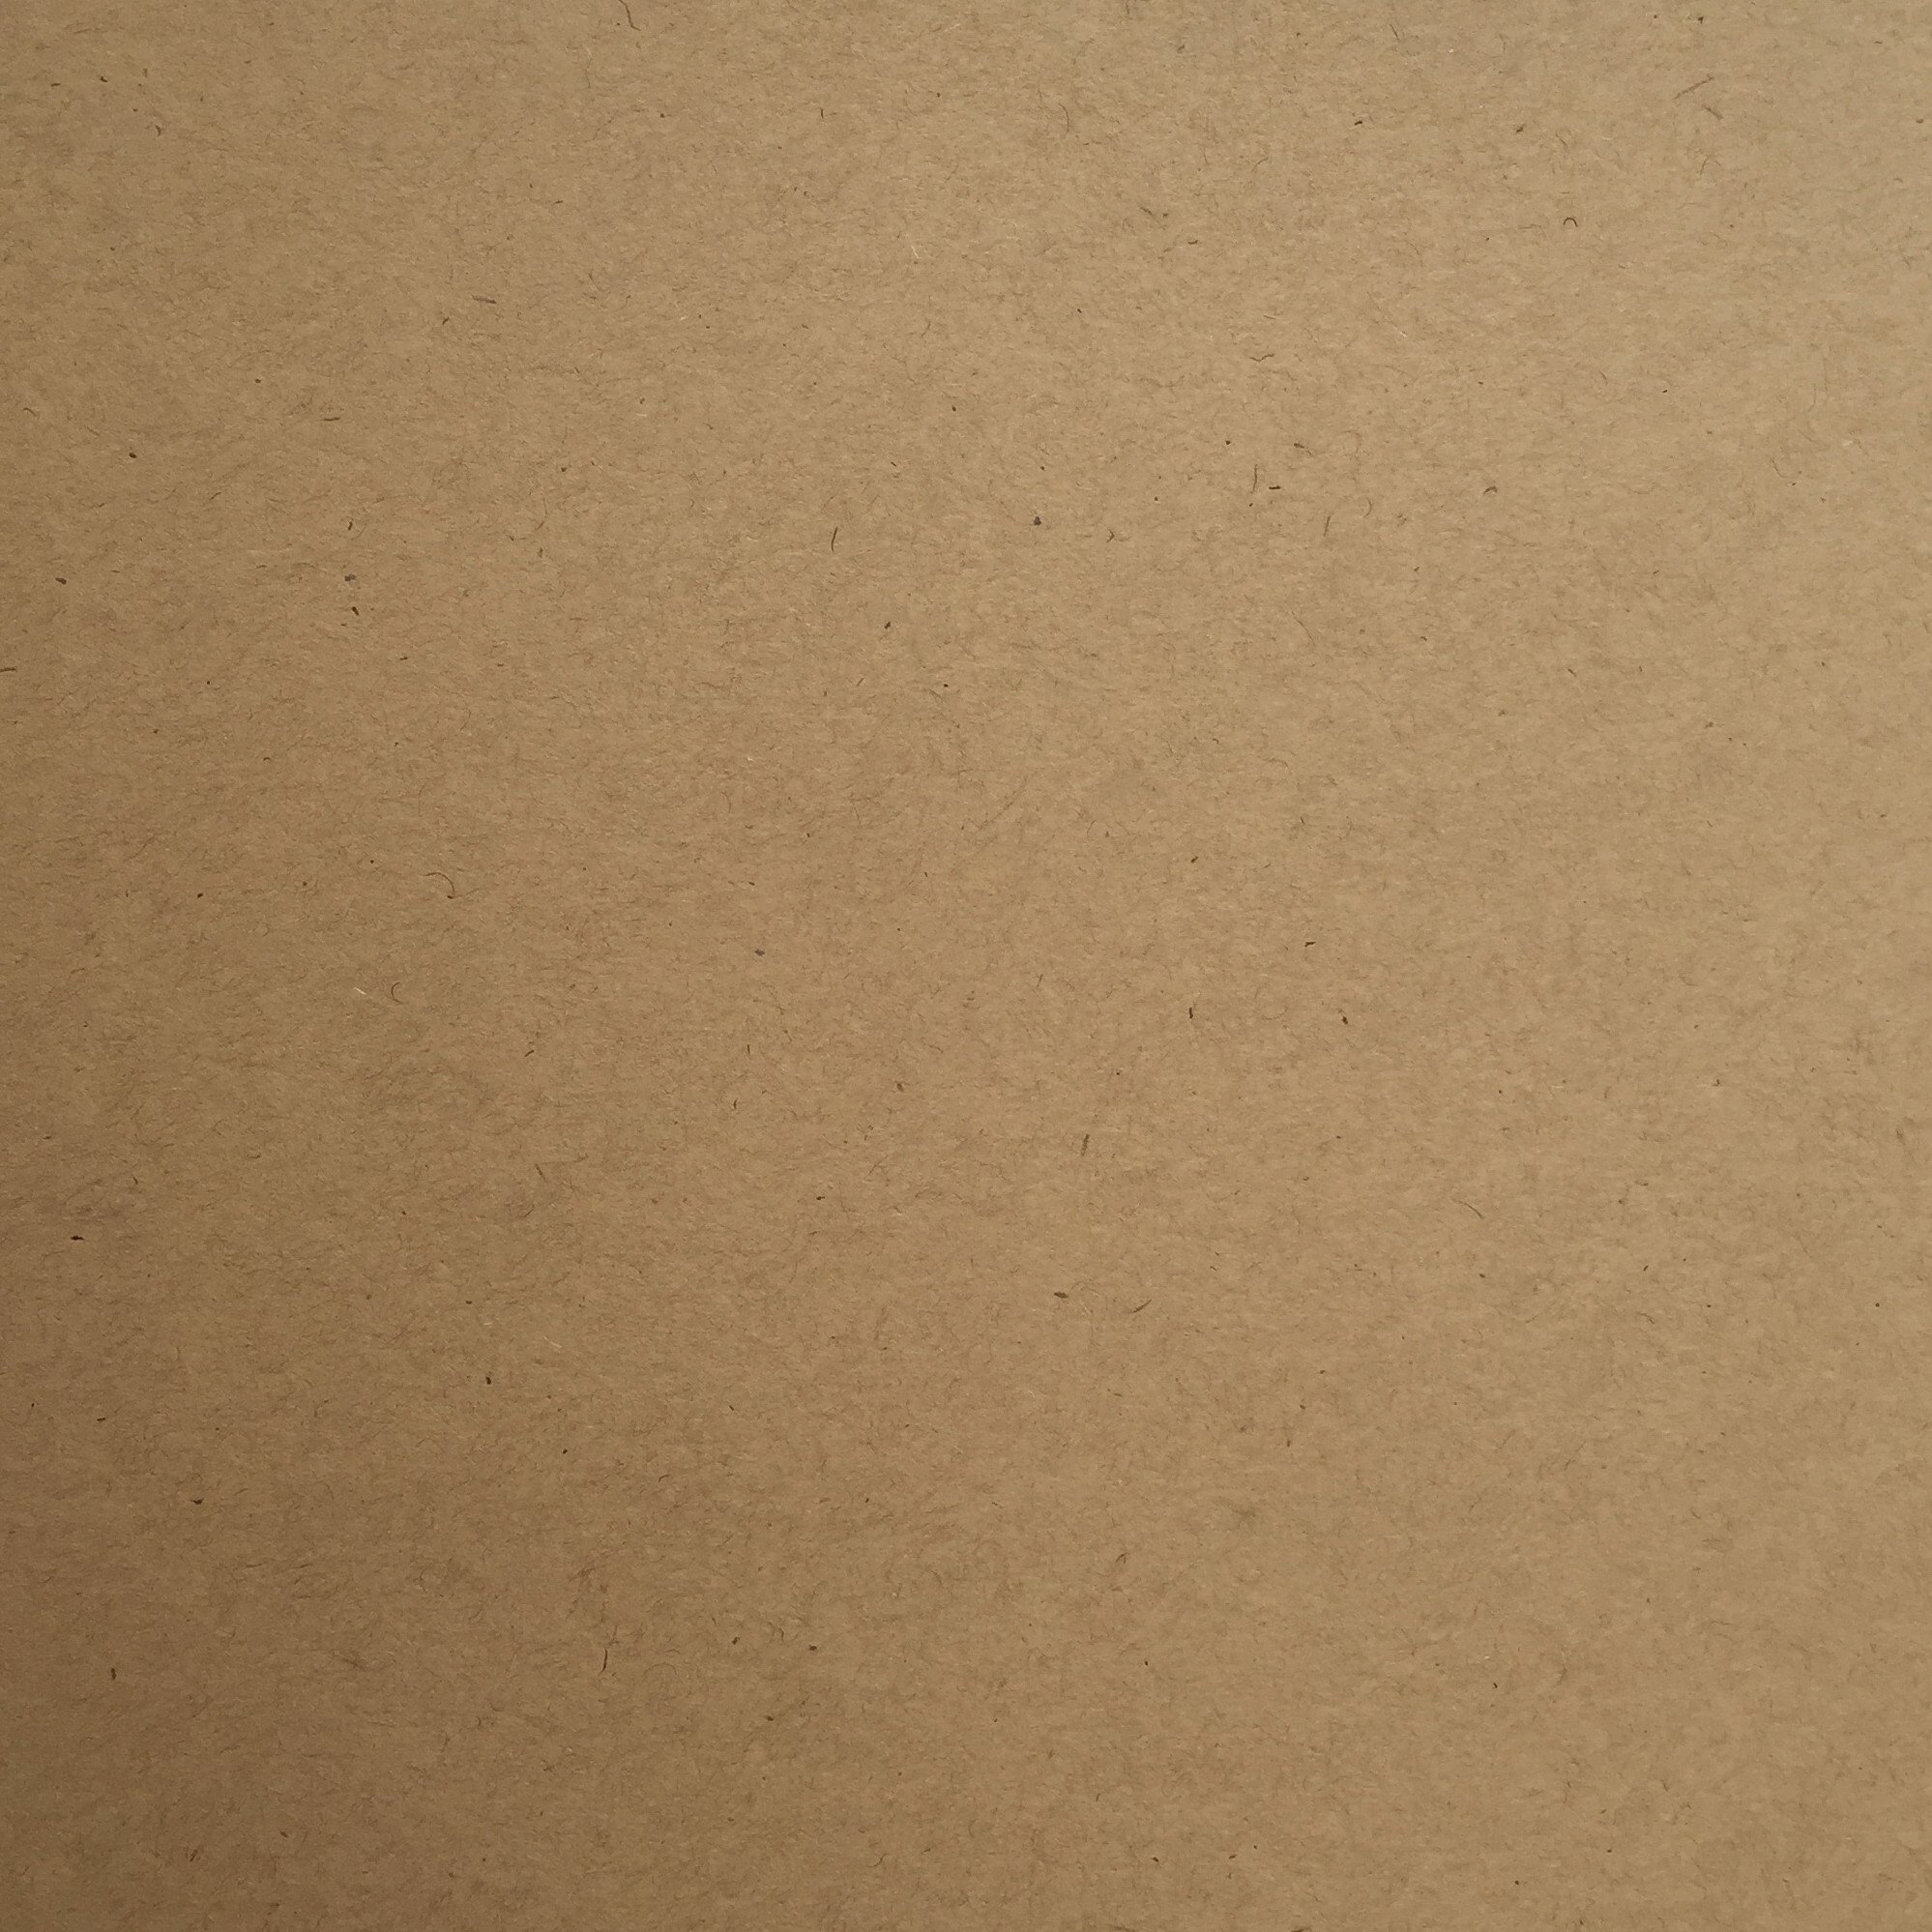 Free photo: Brown Paper - Surface, Texture, Papyrus - Free Download - Jooinn